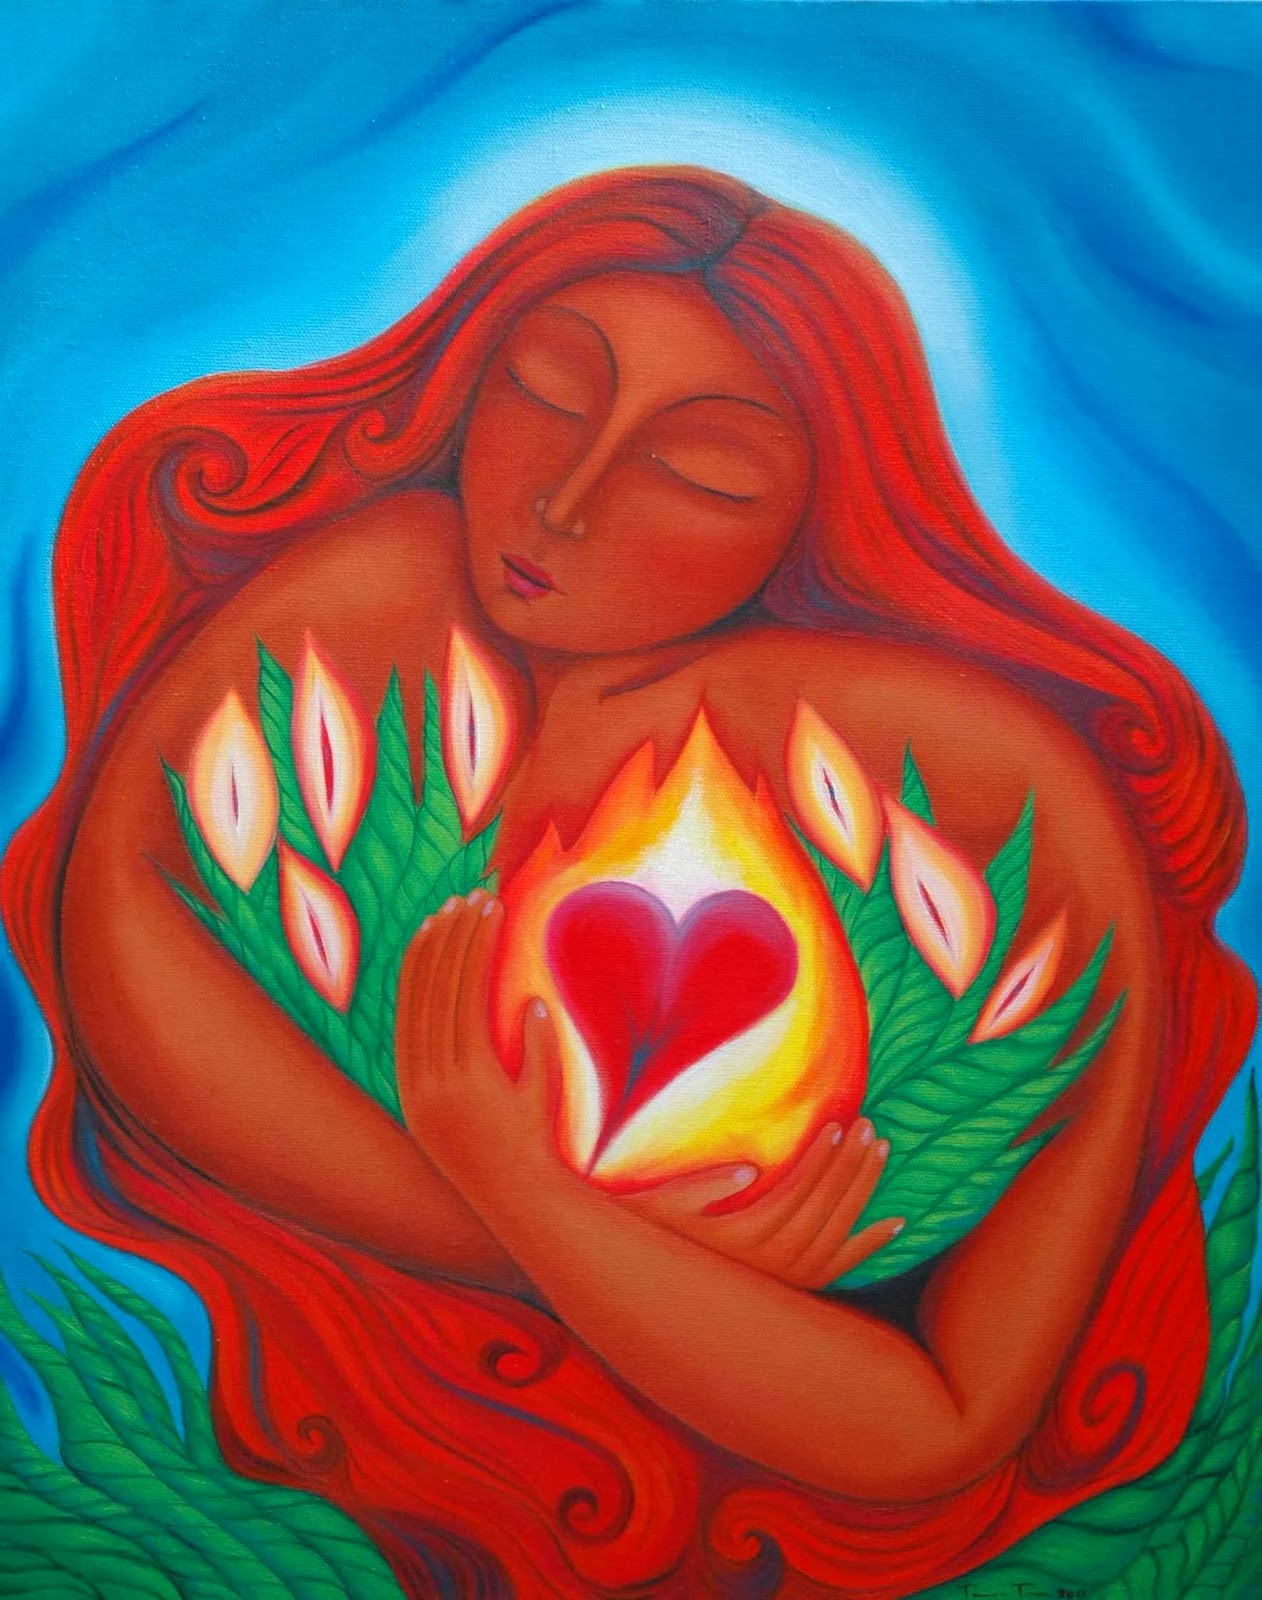 maria-magdalena-del-corazon-ardiente-mary-magdalene-of-the-burning-heart-tanya-torres-2012-web.jpg